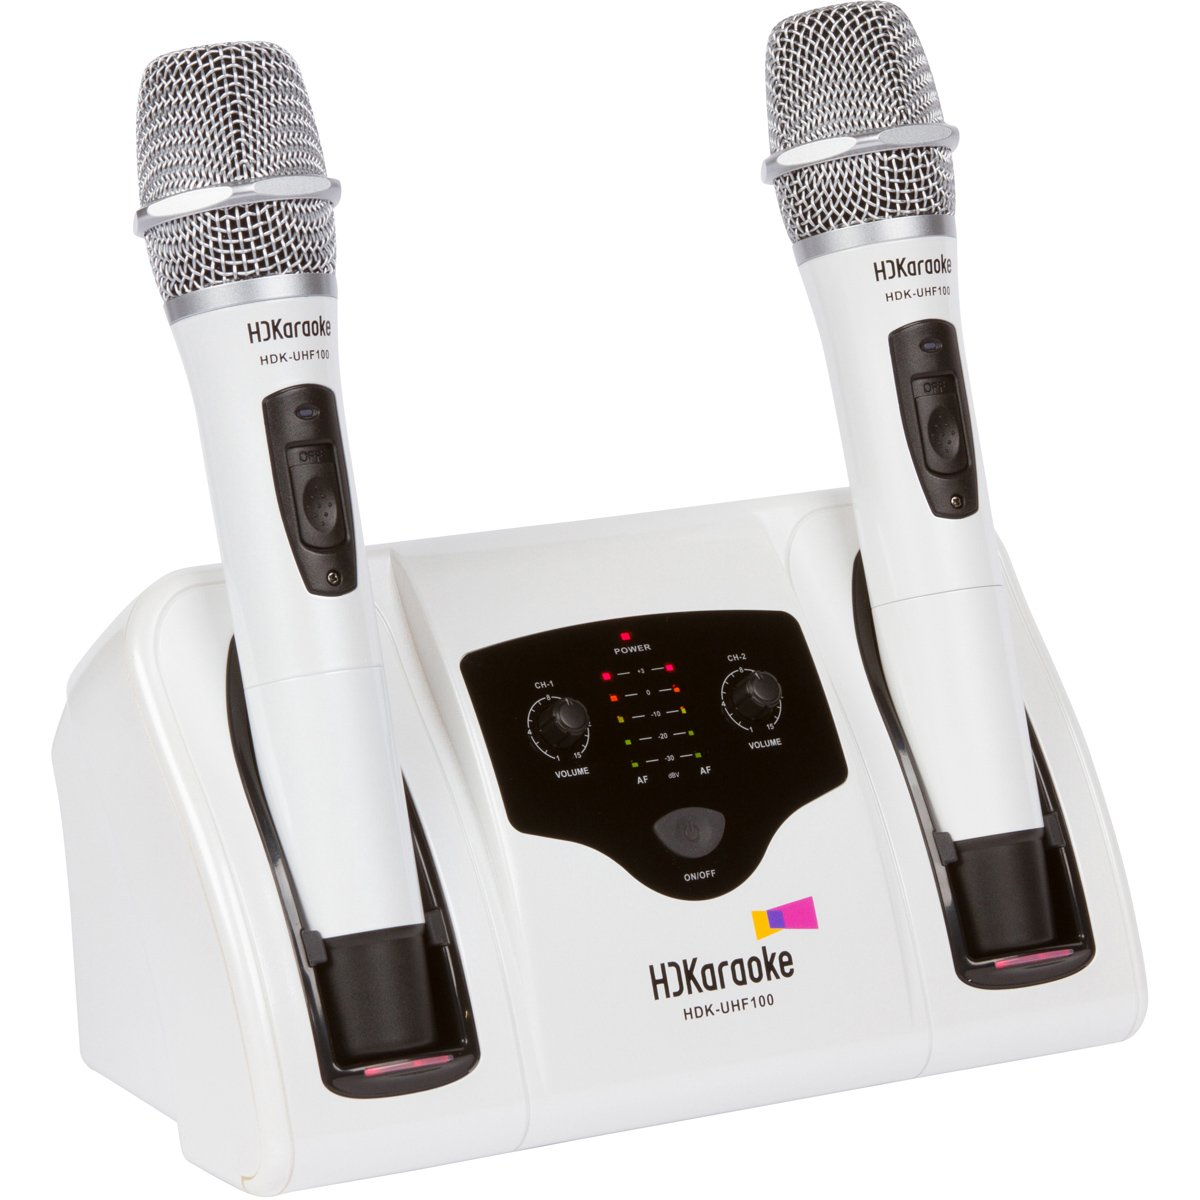 HDKaraoke HDK-UHF 100 Professional UHF Dual-Channel Rechargeable Wireless Microphone System, White by HDKaraoke